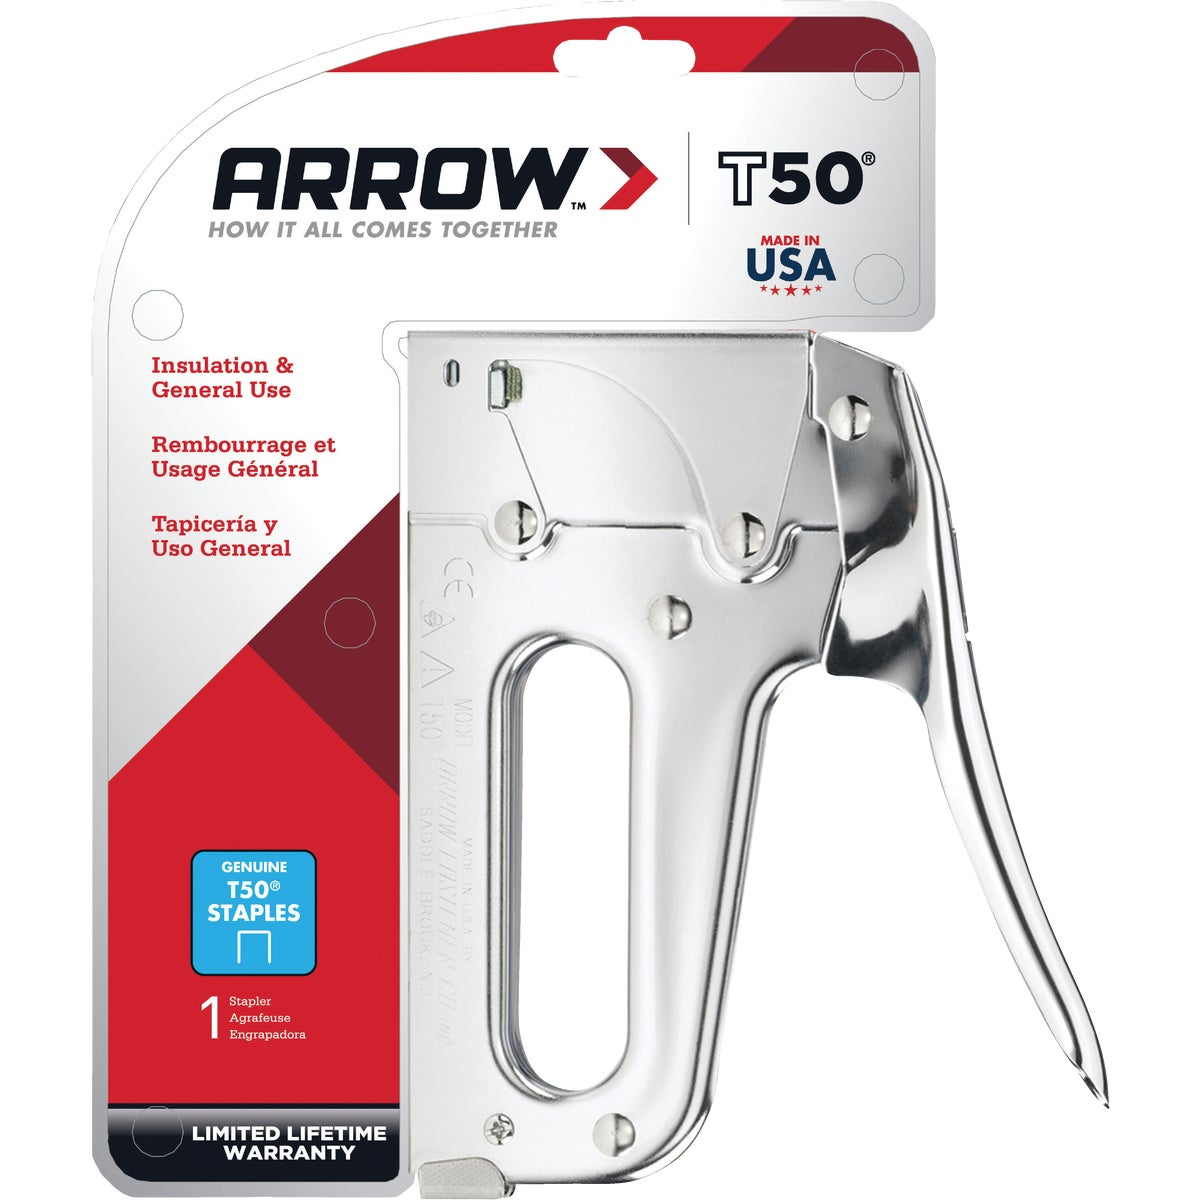 STAPLE GUN - T50 by Arrow Fastener Co